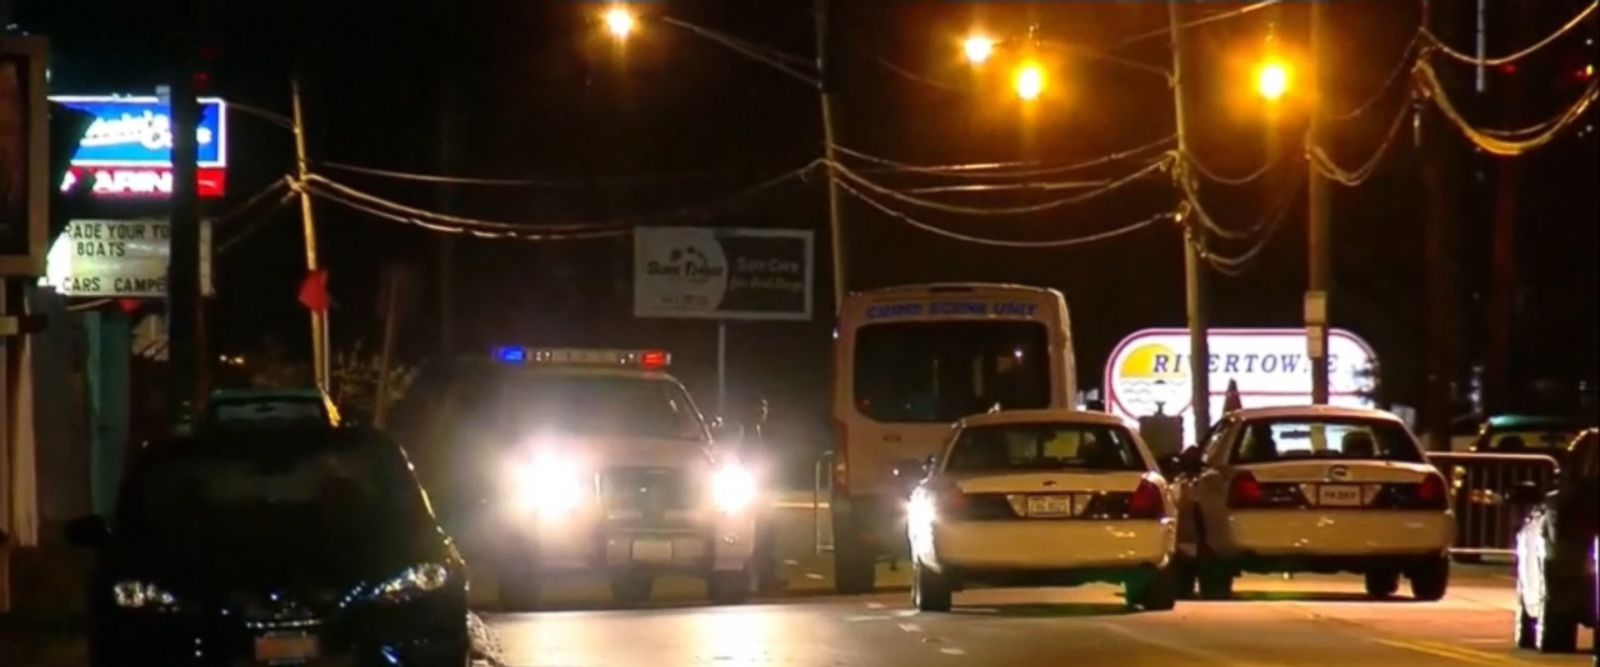 VIDEO: The toll from a weekend nightclub shooting in Cincinnati has risen to 17 injured and 1 dead, as one more person has come forward and said he was struck by gunfire in the melee, police said Monday.